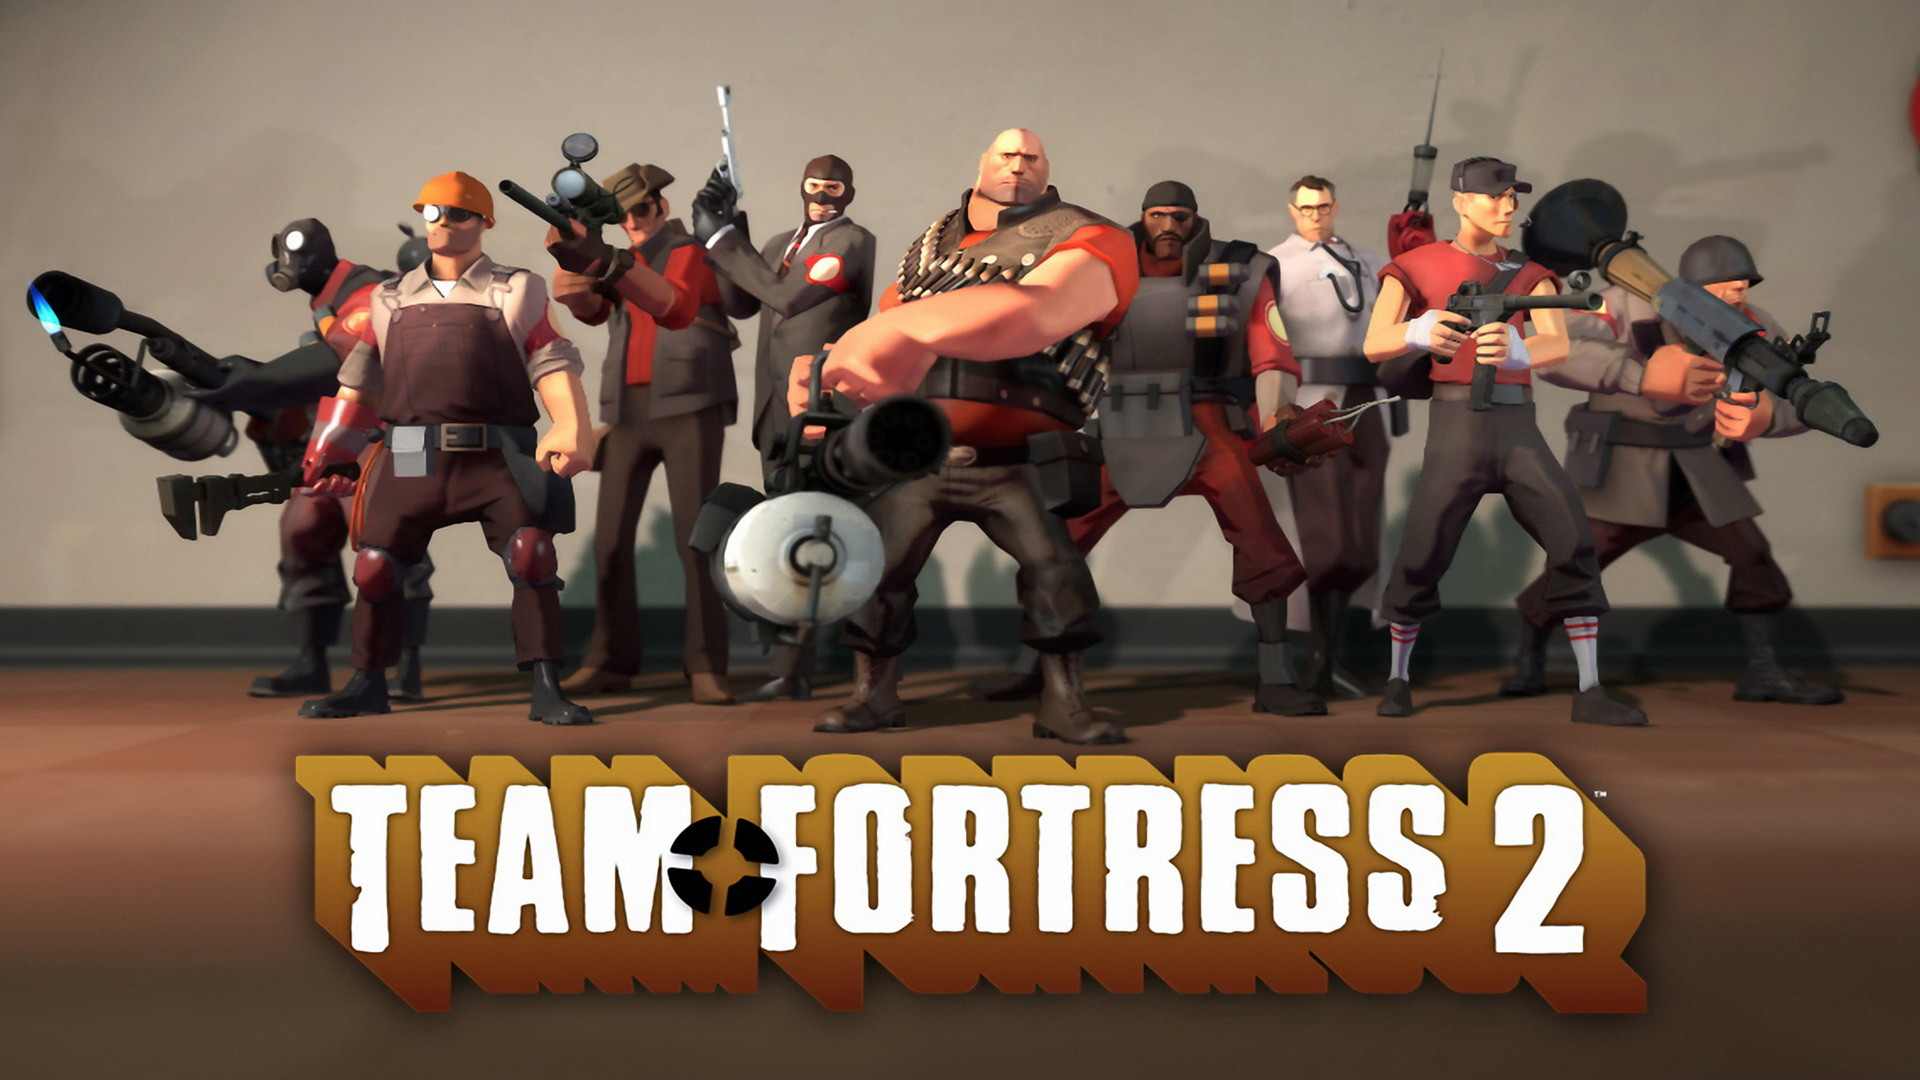 team fortress 2 Wallpaper, Game HD Wallpapers, Video Games HD 1080p .